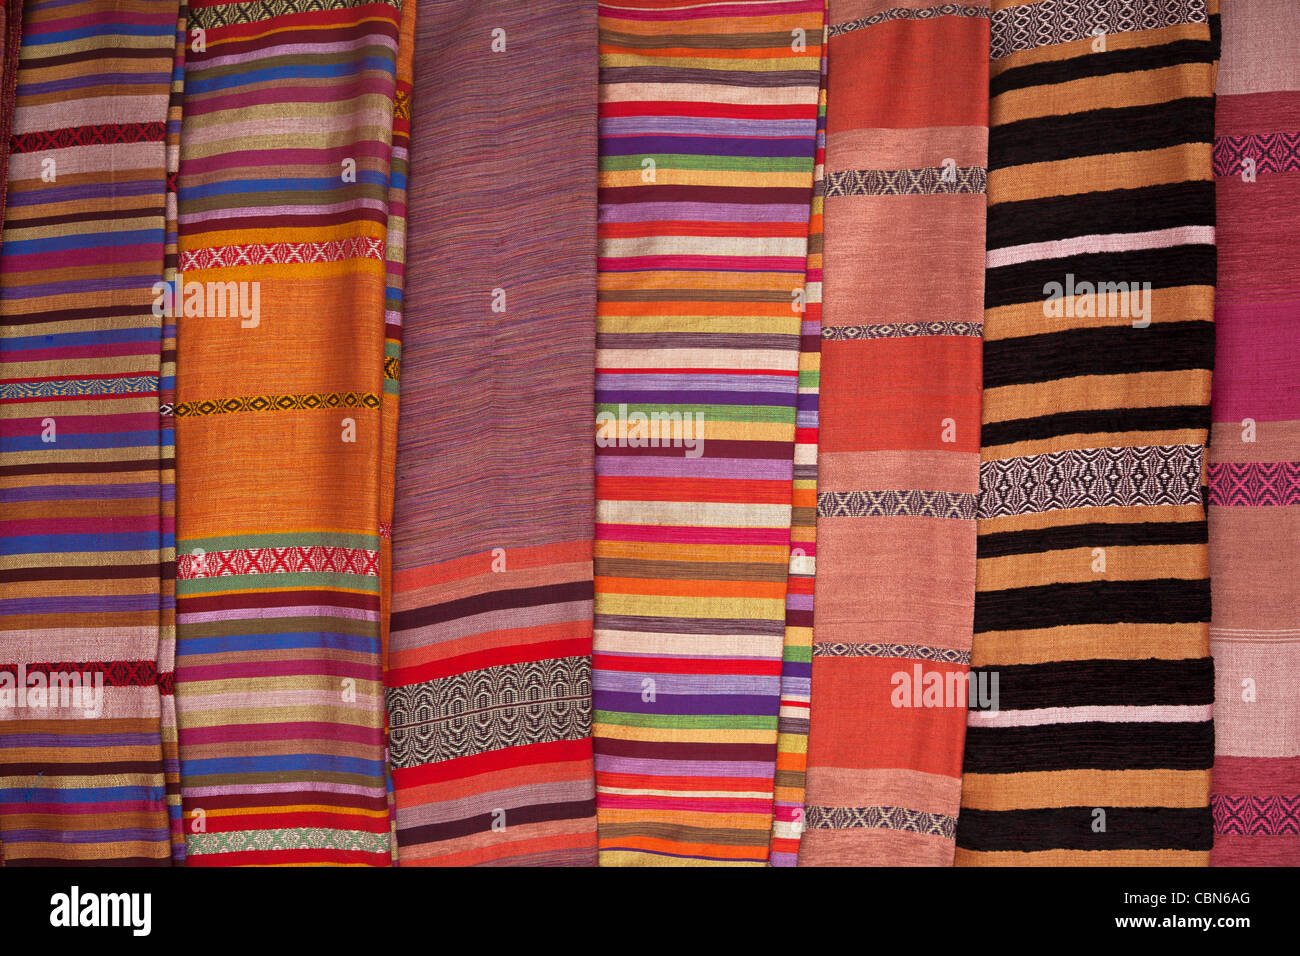 Colourful carpets on display in Marrakesh - Stock Image